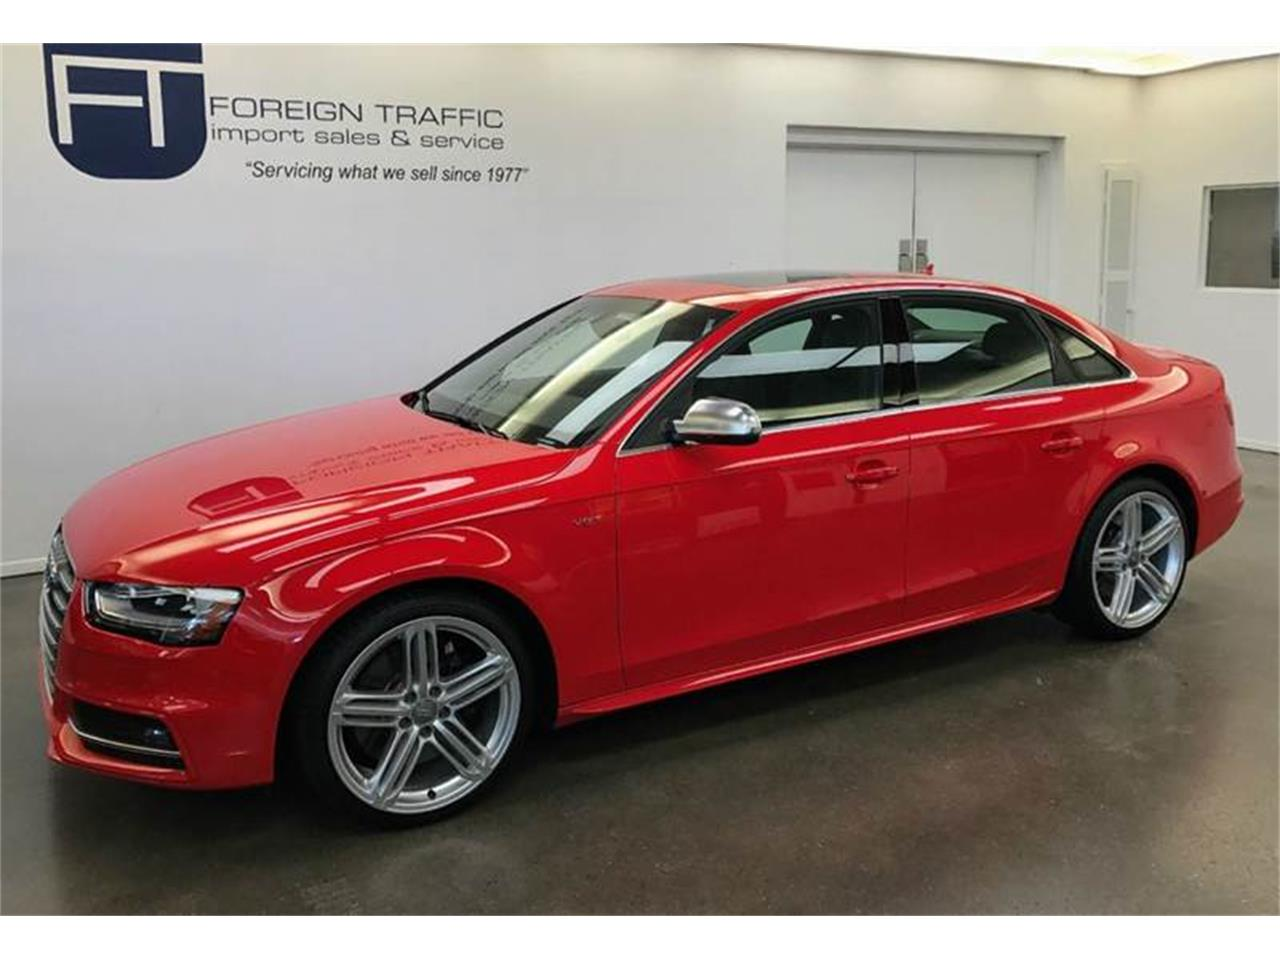 Large Picture of '16 Audi S4 located in Allison Park Pennsylvania Offered by Foreign Traffic Import Sales & Service - LHL3